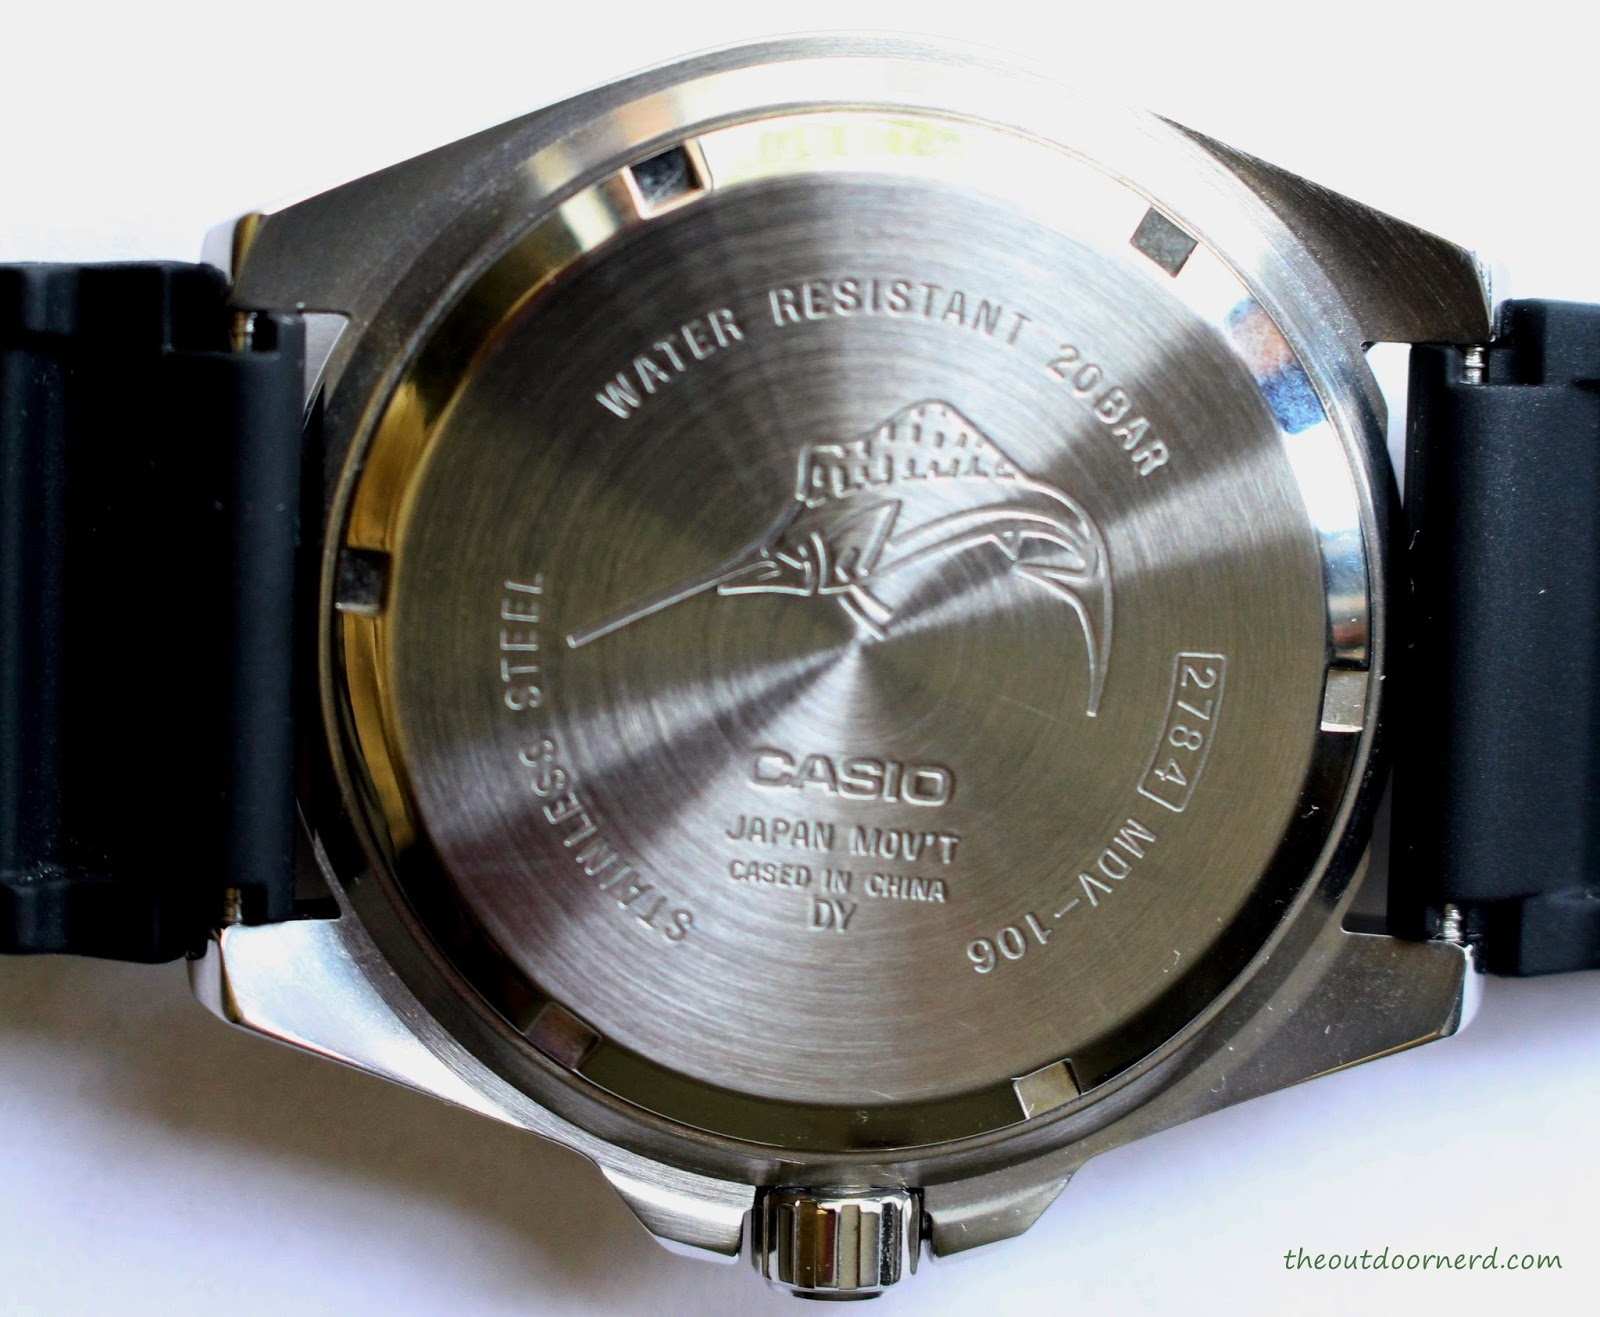 Casio MDV106-1A Diver's Watch: Back View of Case